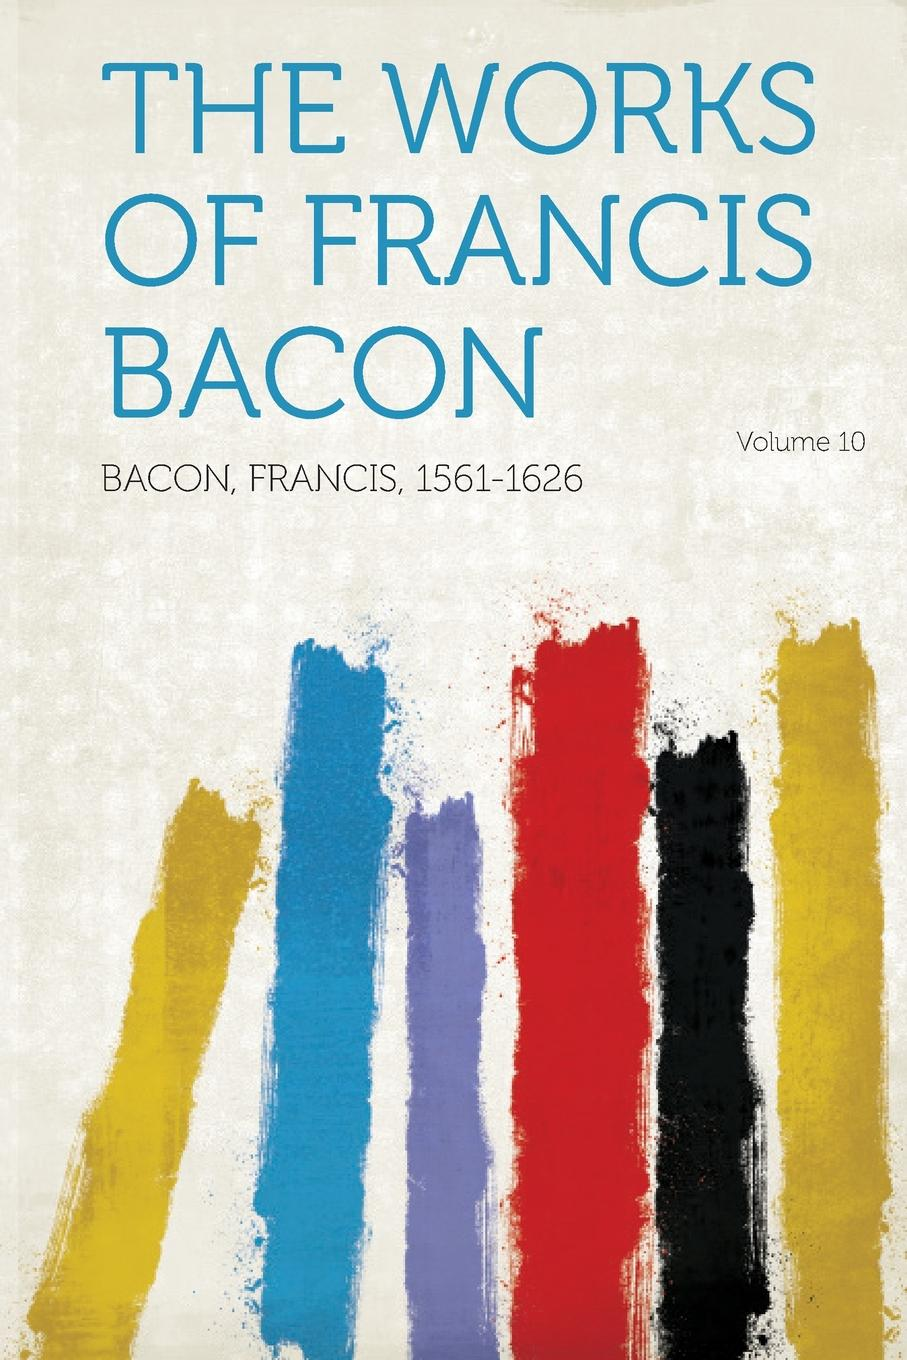 Francis Bacon The Works of Francis Bacon Volume 10 фрэнсис бэкон the works of francis bacon volume 11